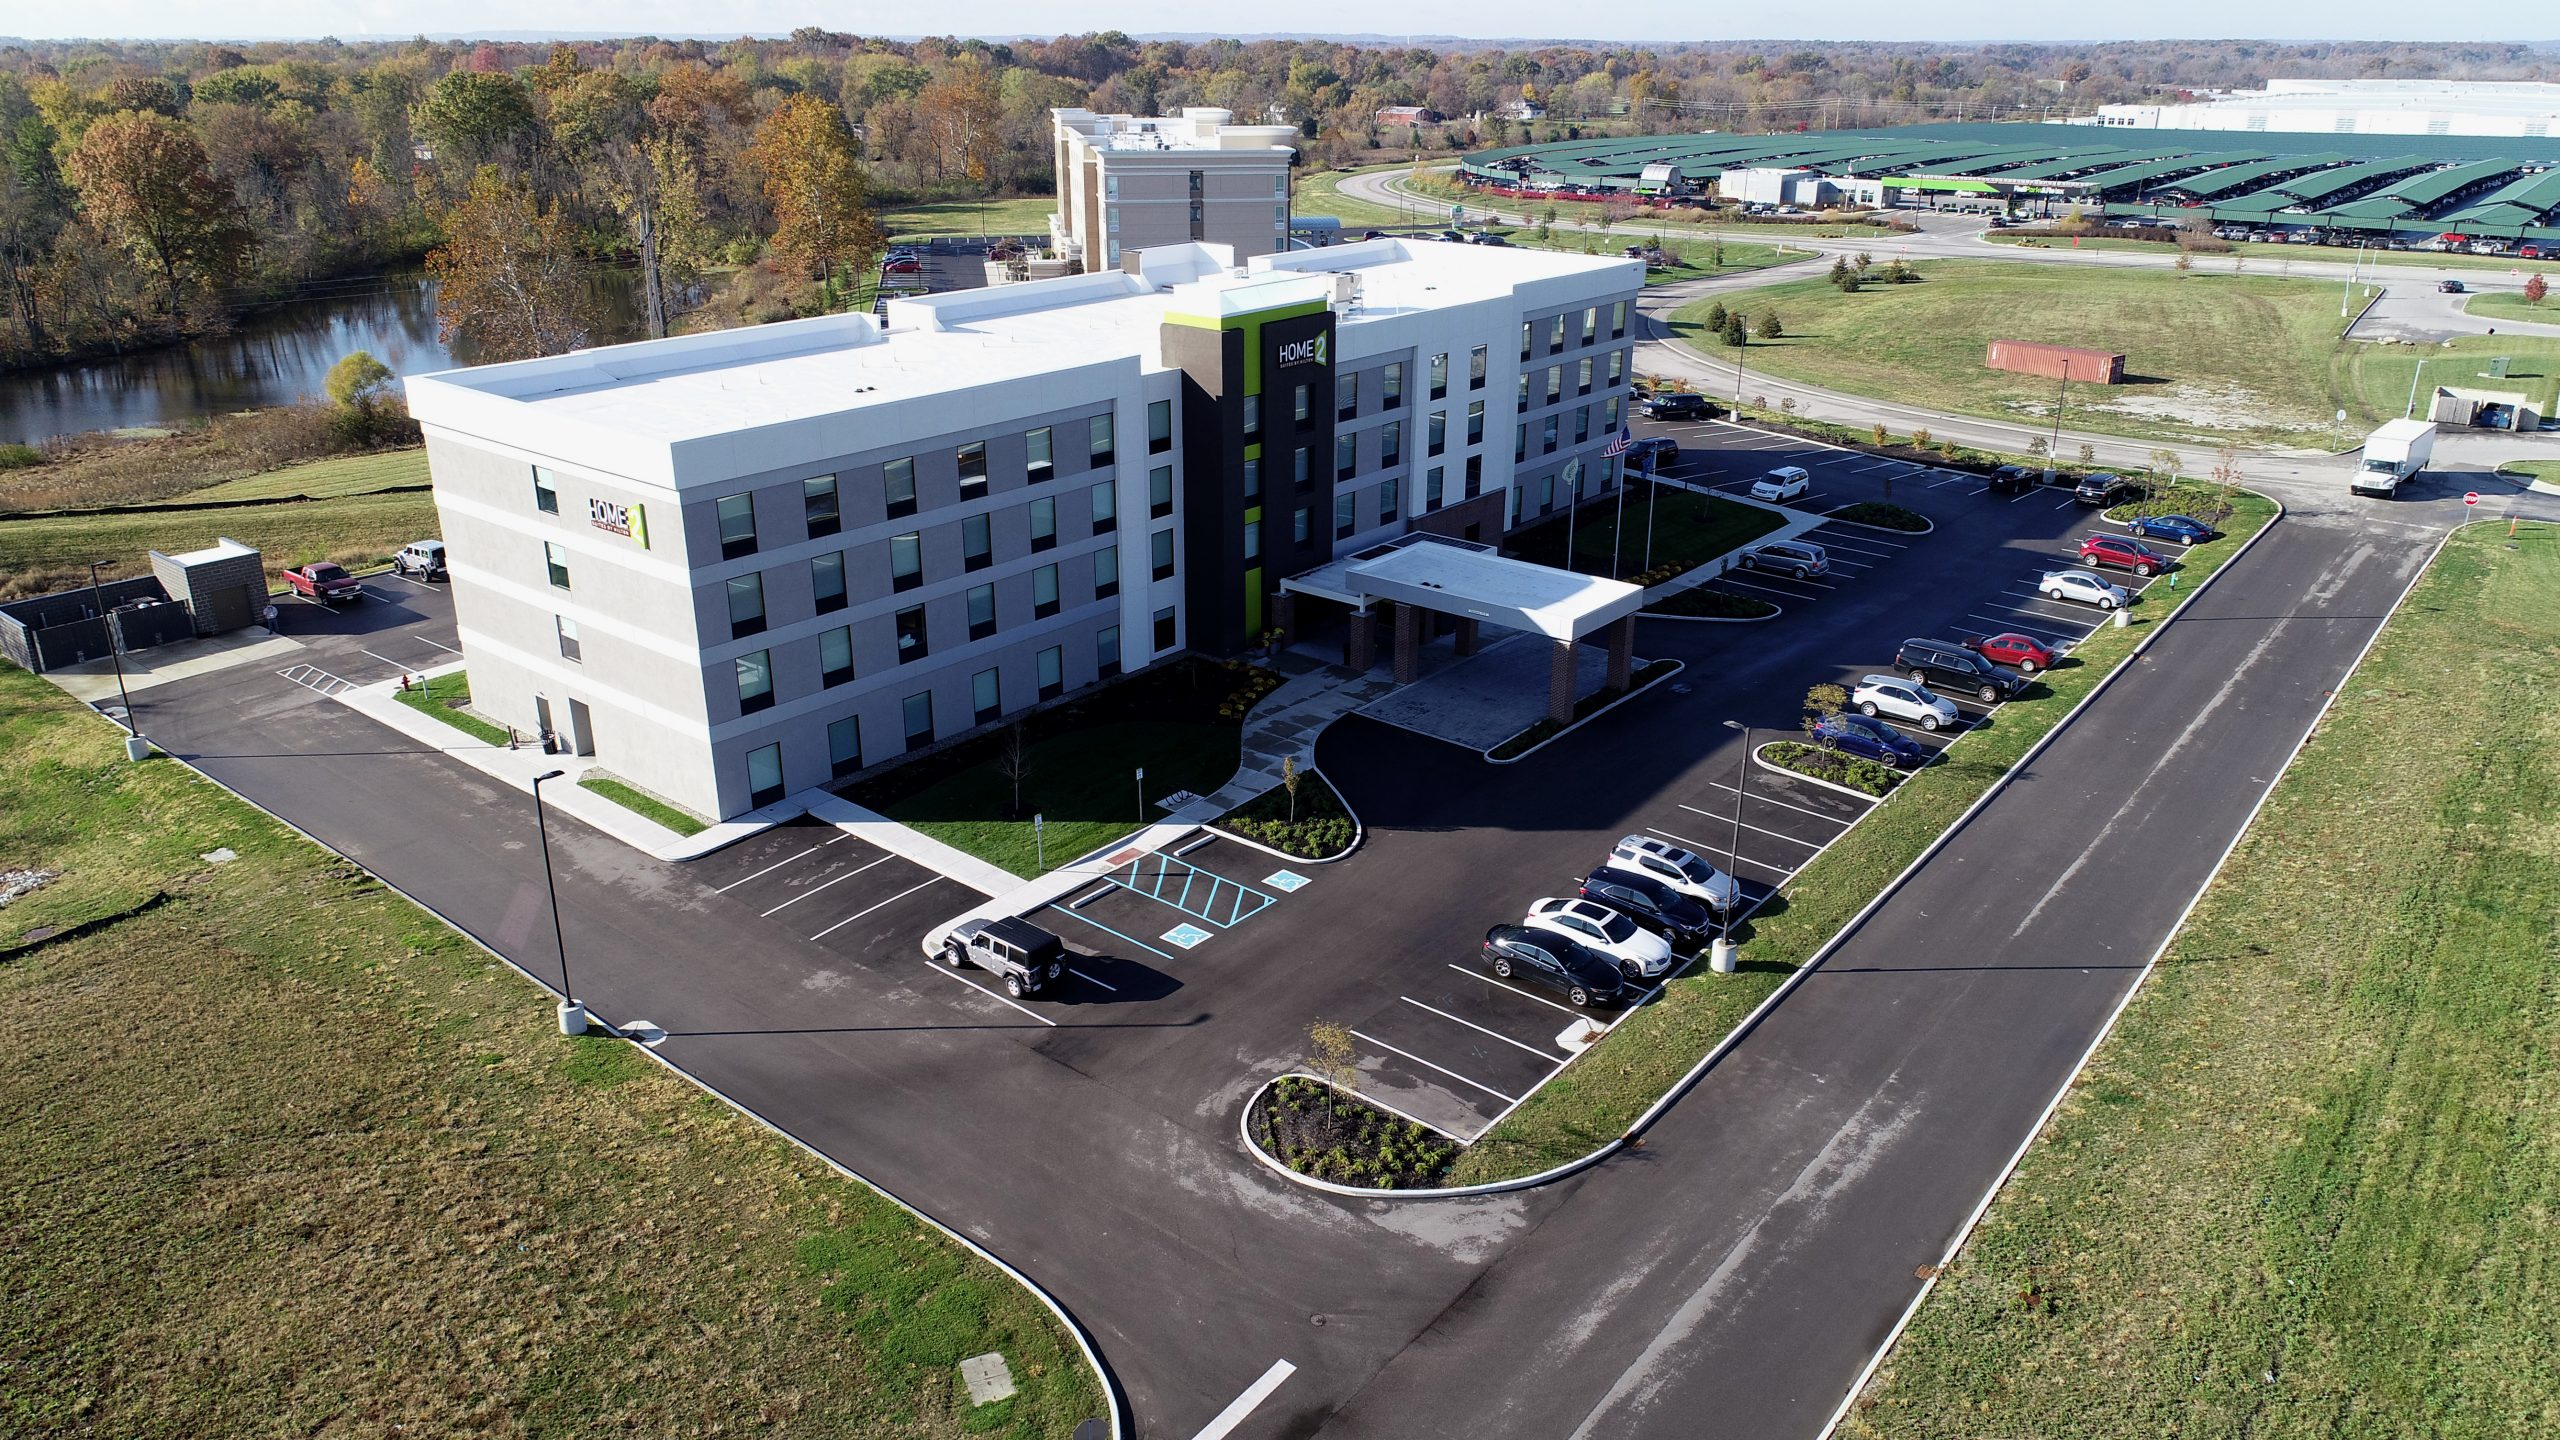 home to suites commercial roofing project by ce reeve roofing in indiana